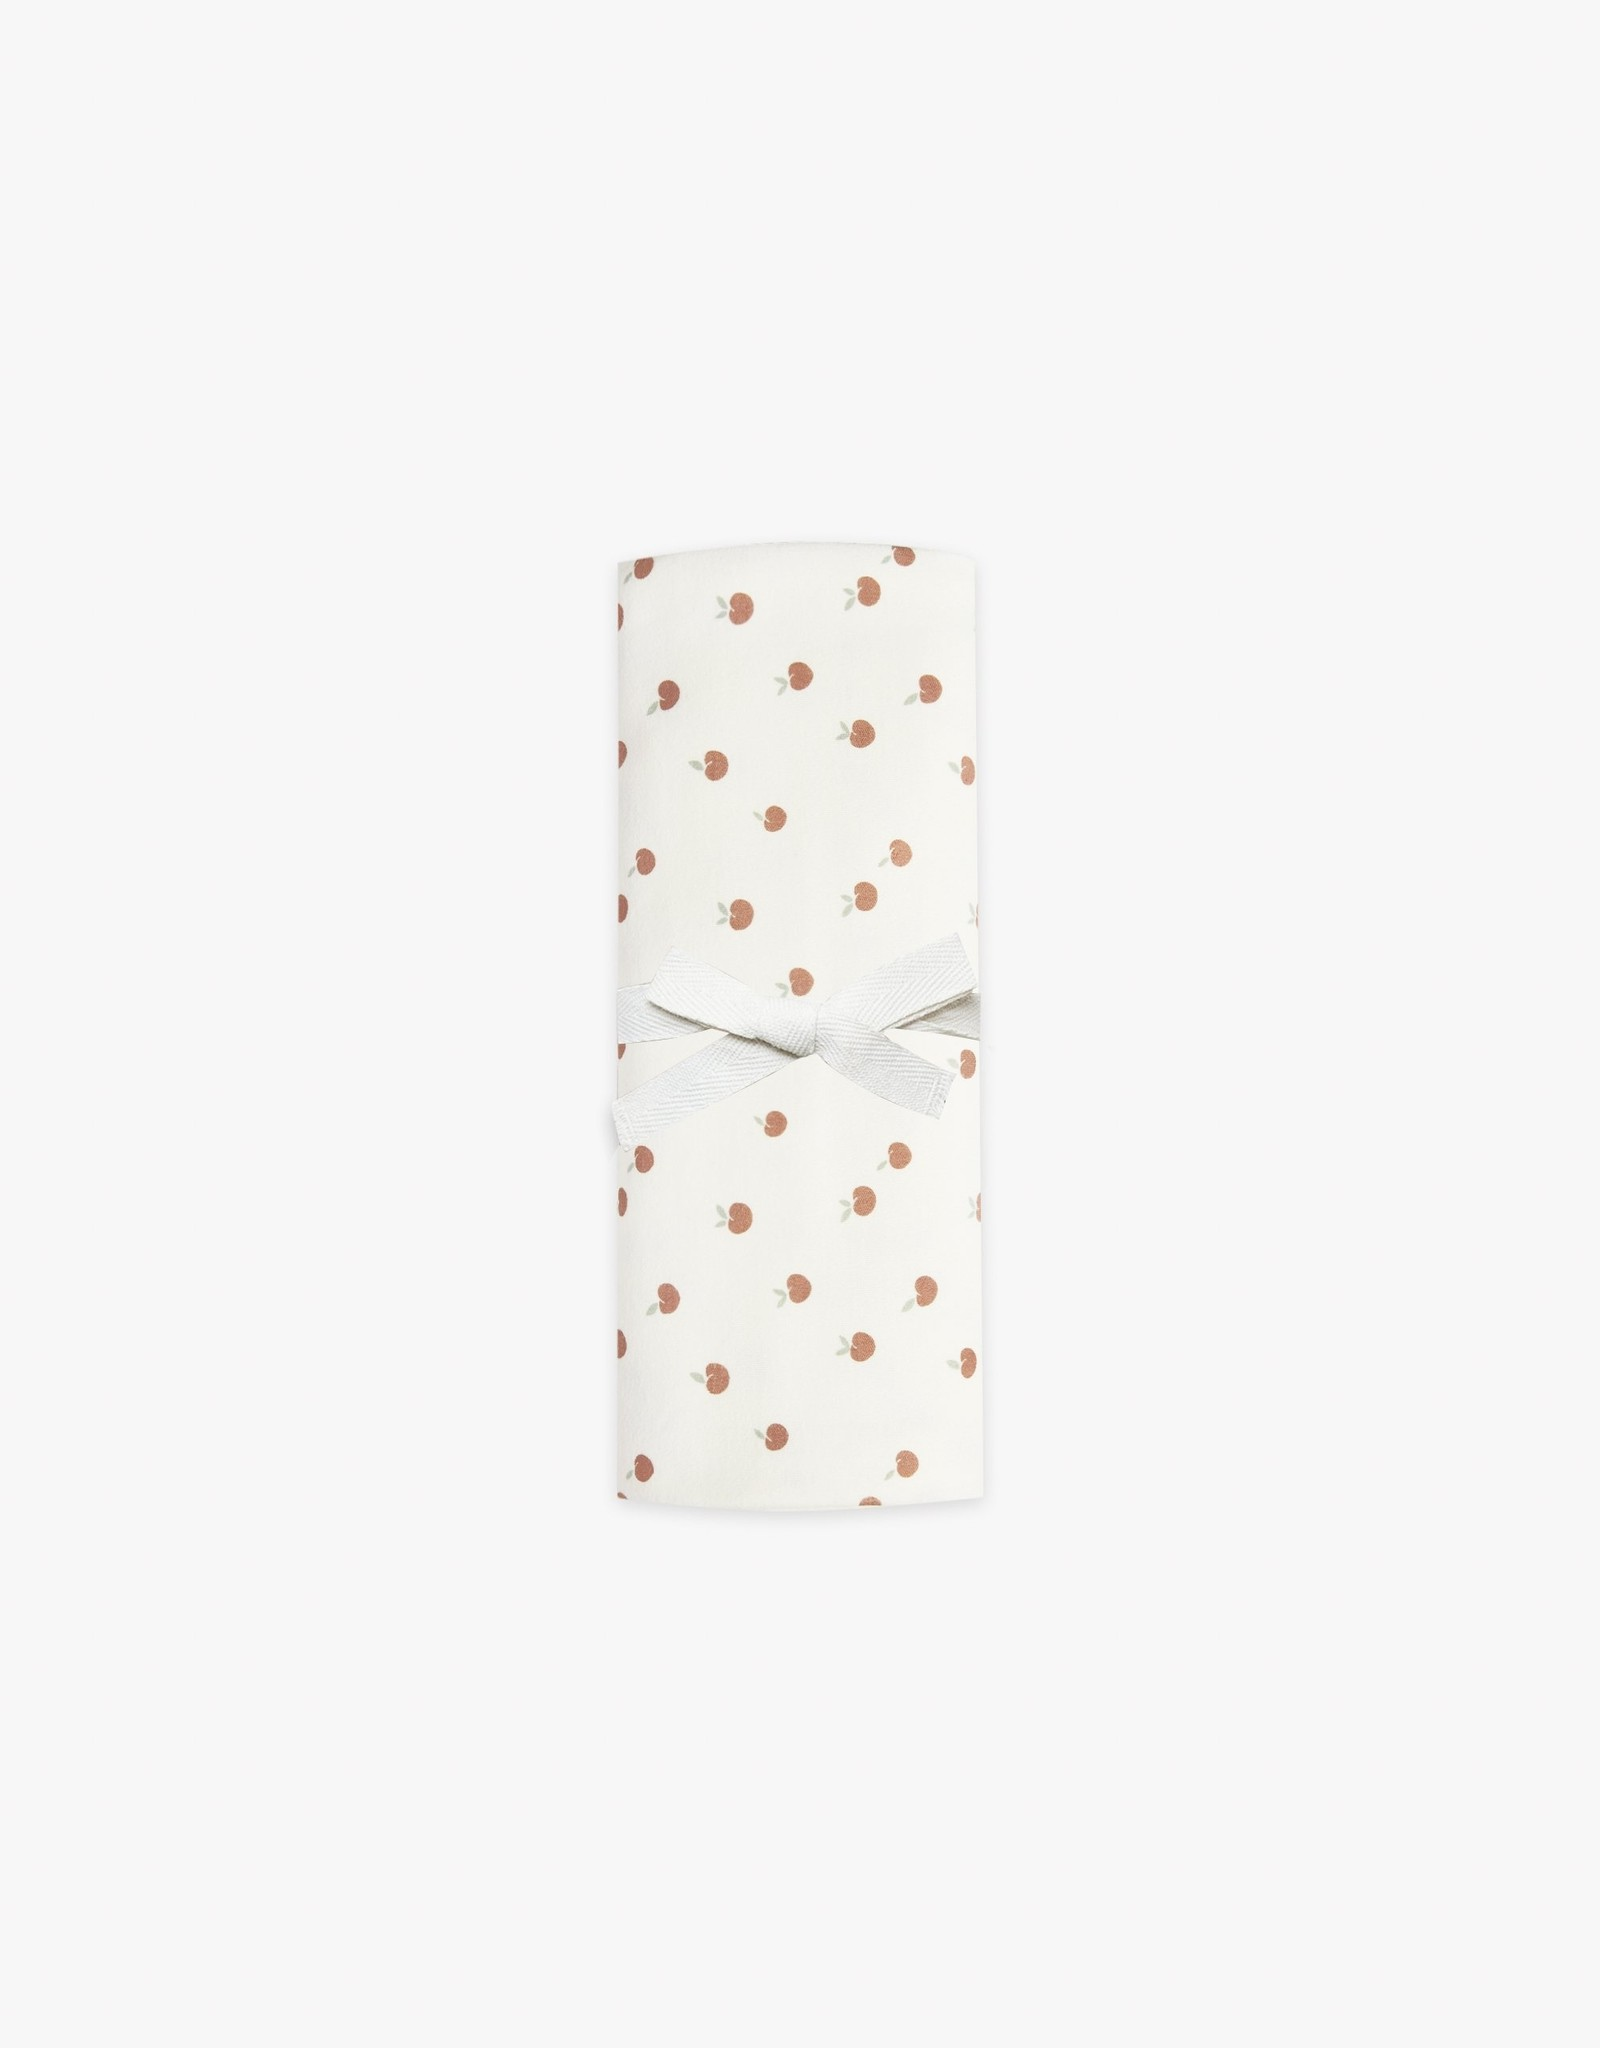 Quincy Mae Baby Swaddle, peach print